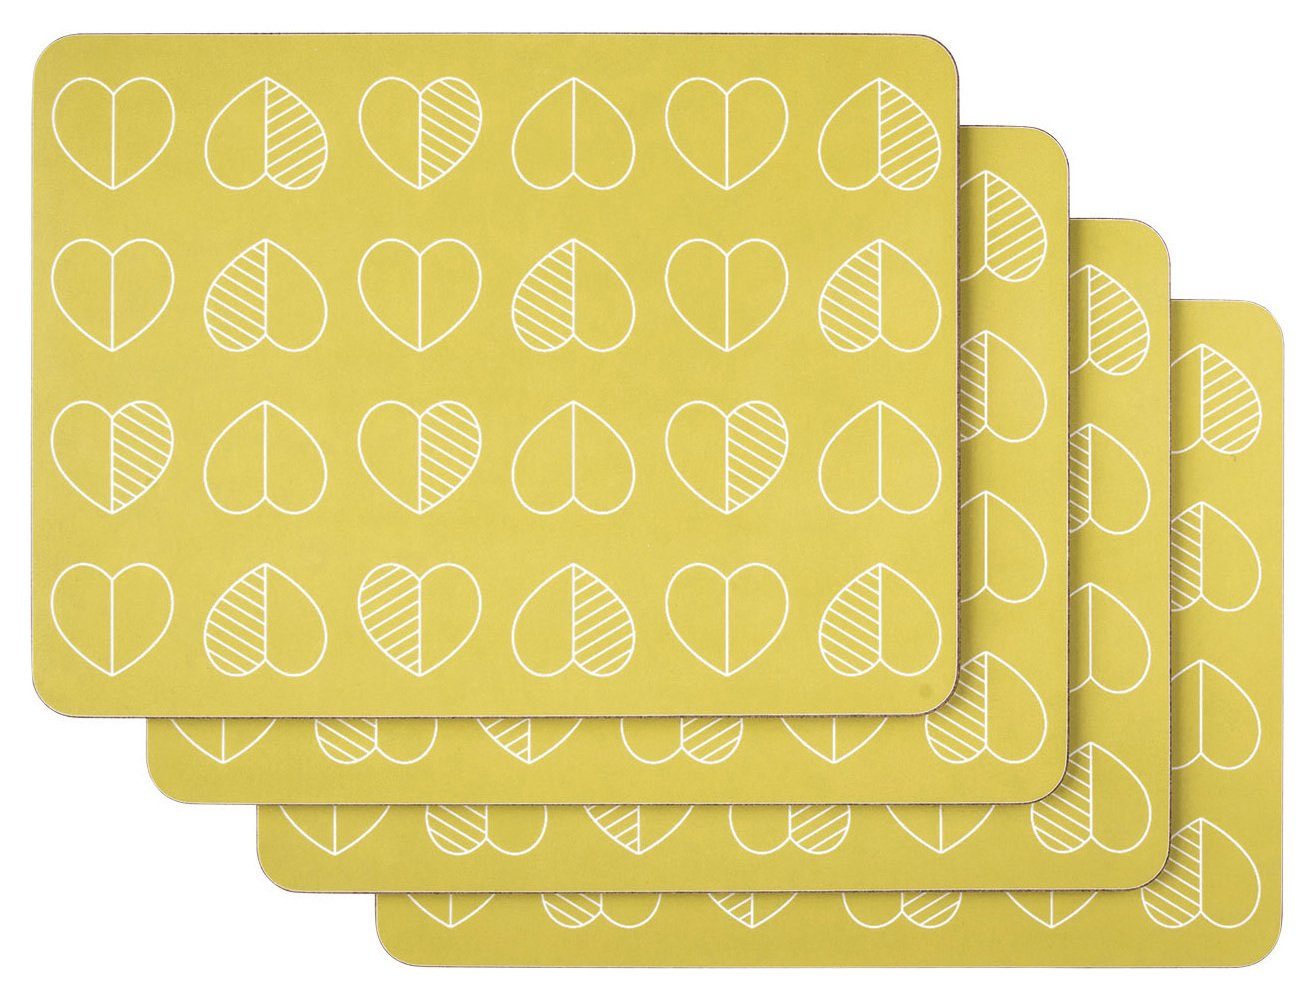 Image of Beau and Elliot Outline Set of 4 Placemats - Mustard.